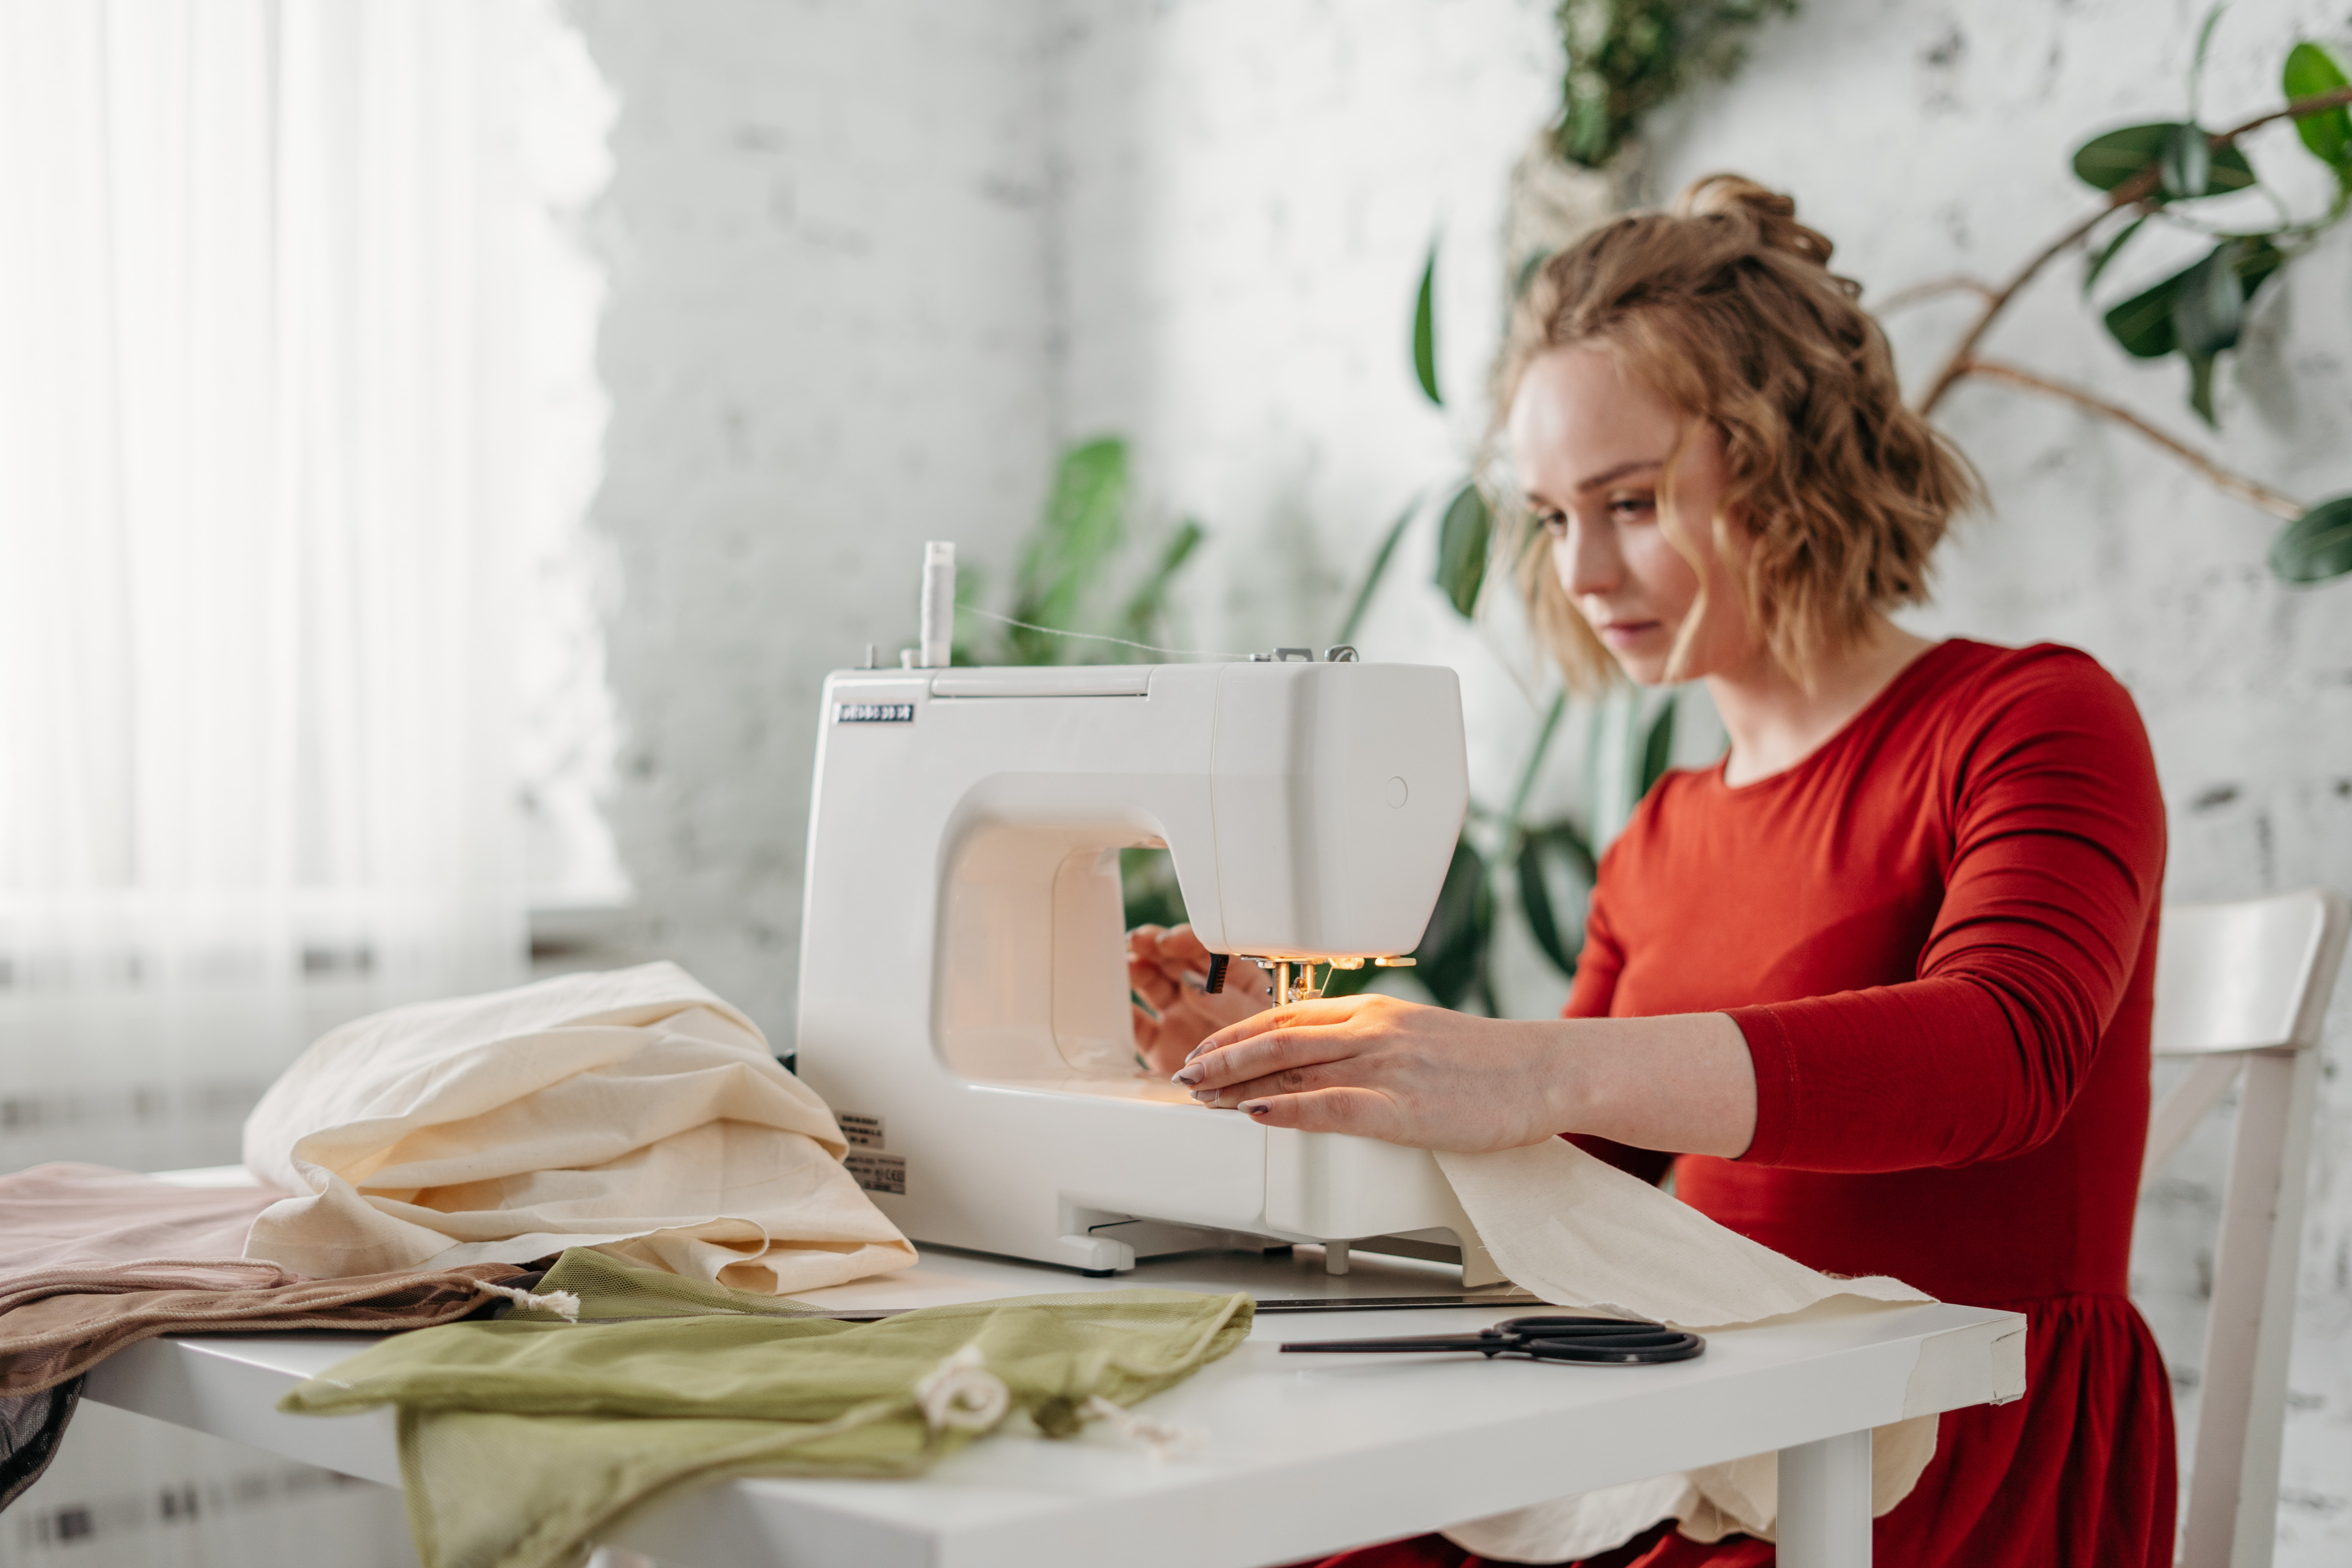 woman sewing handmade products for e-commerce business